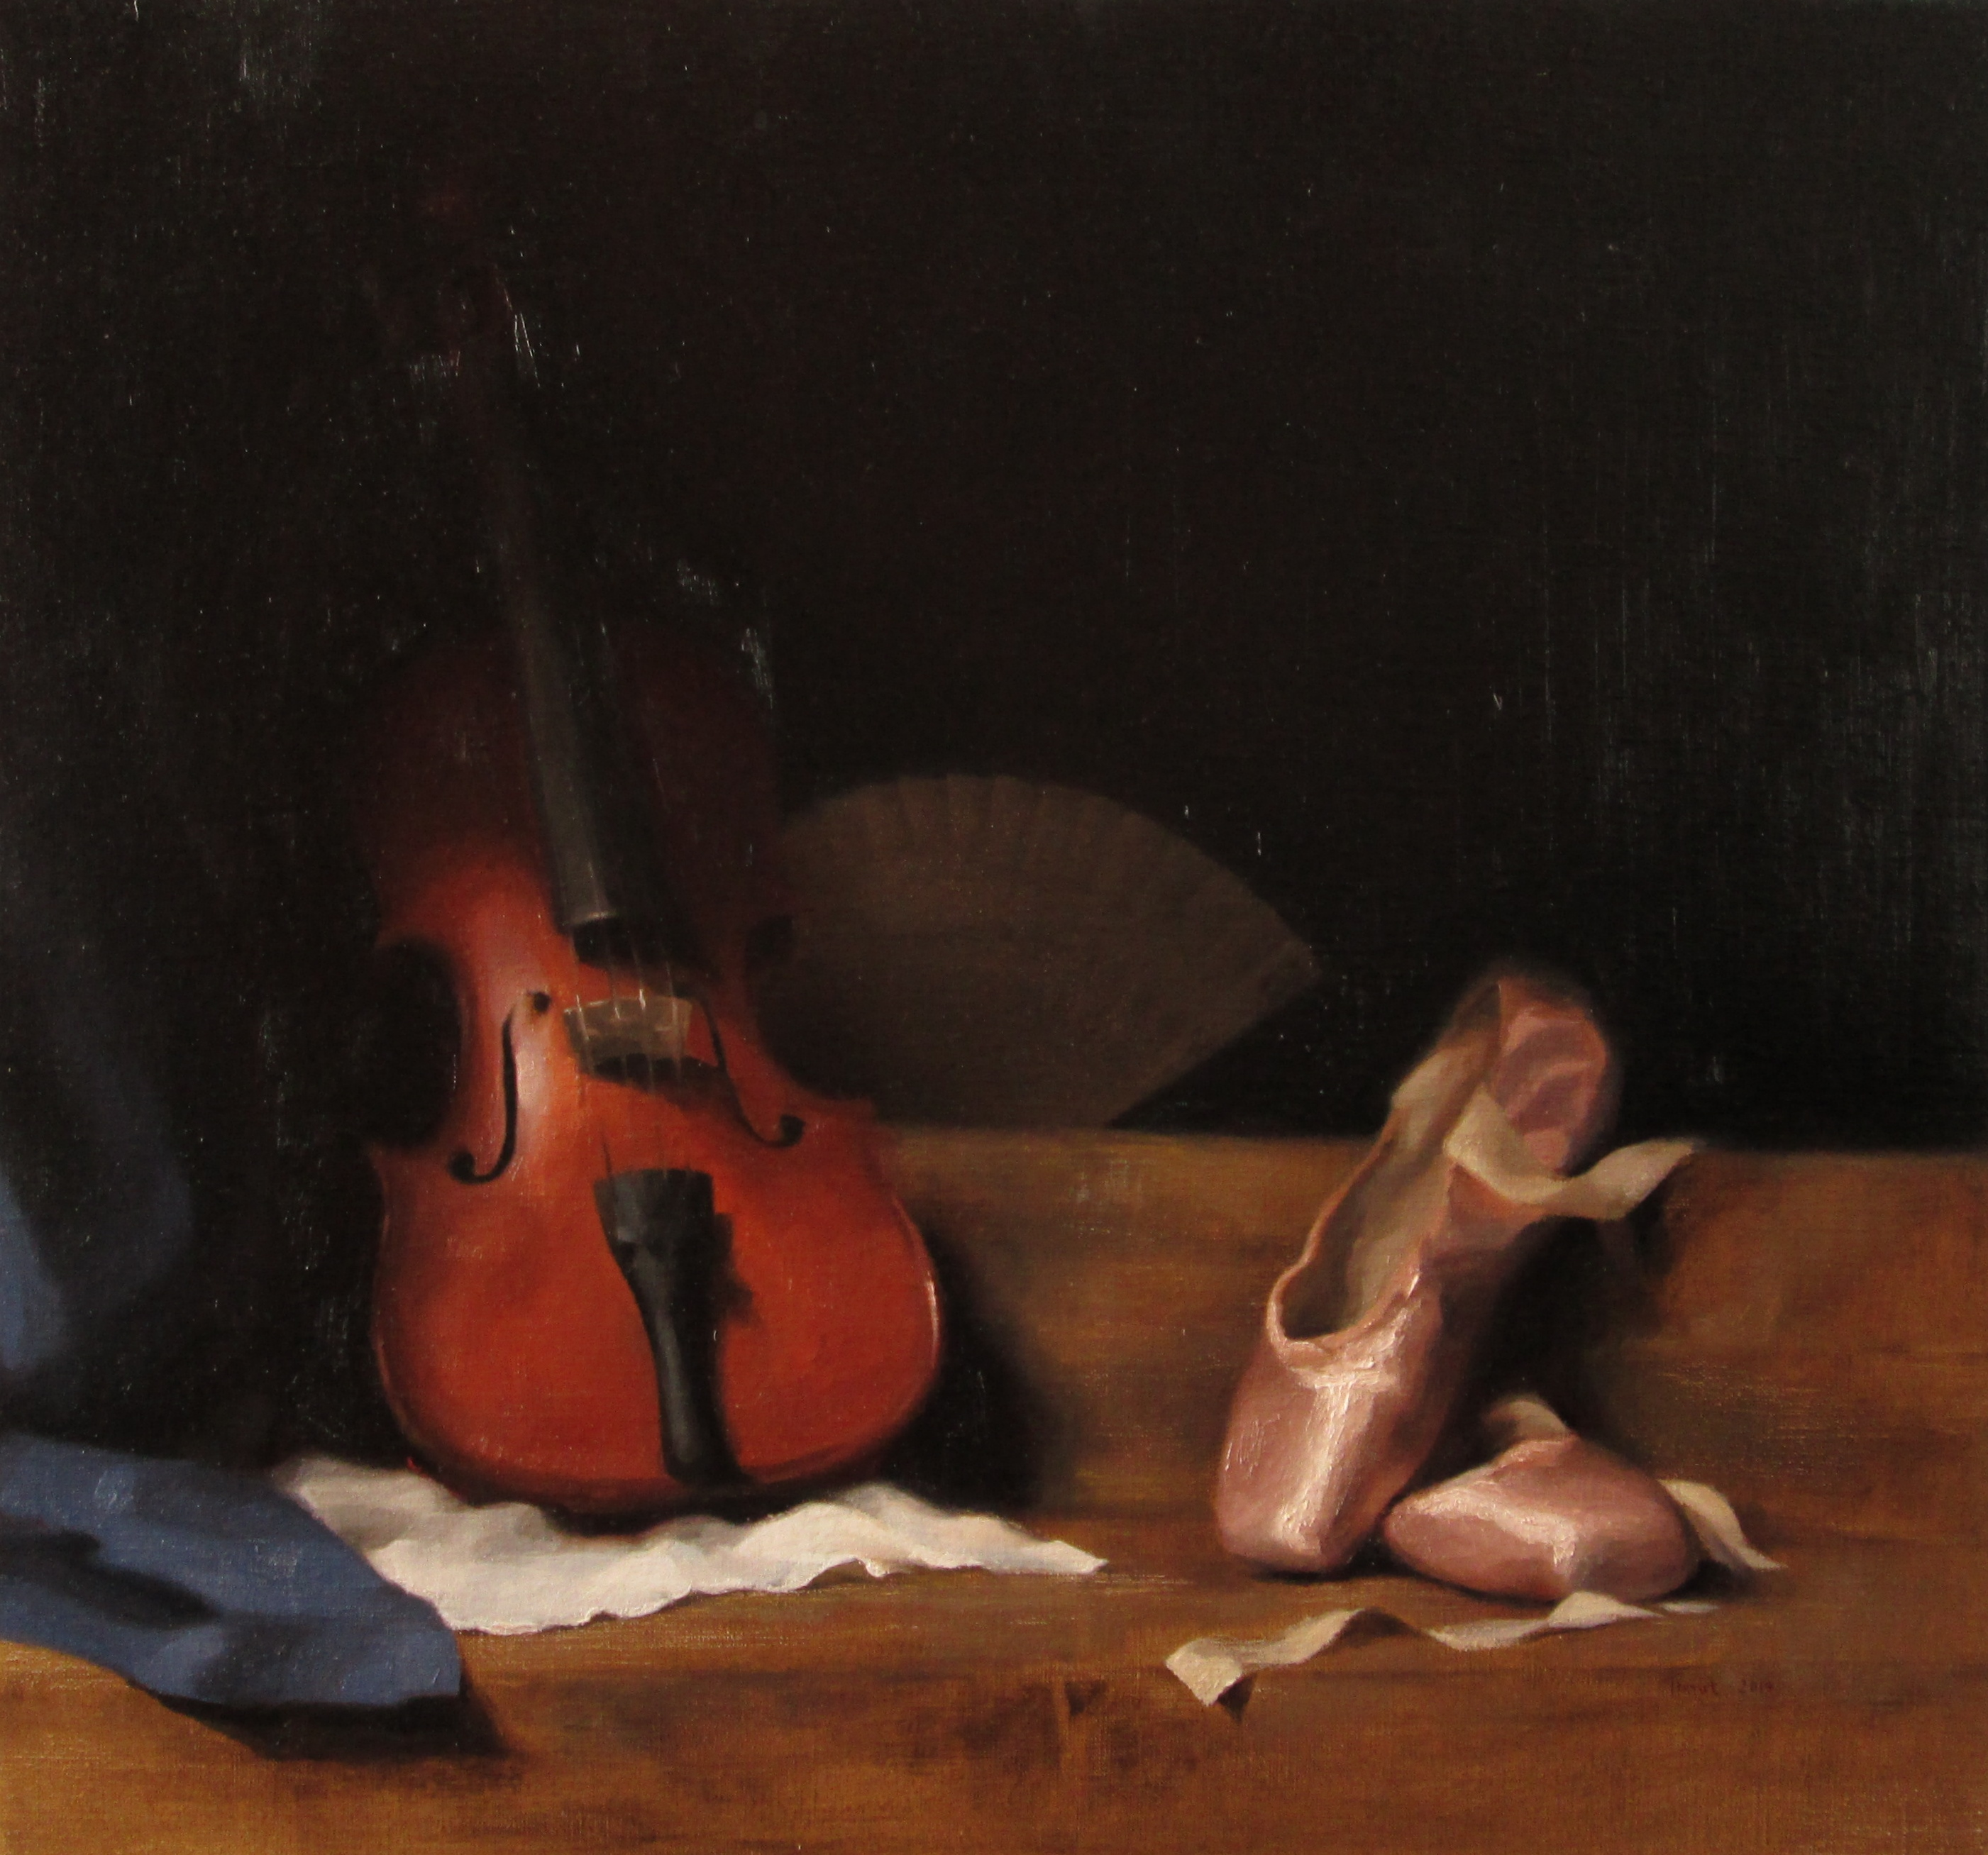 THE PERFORMANCE (sold)